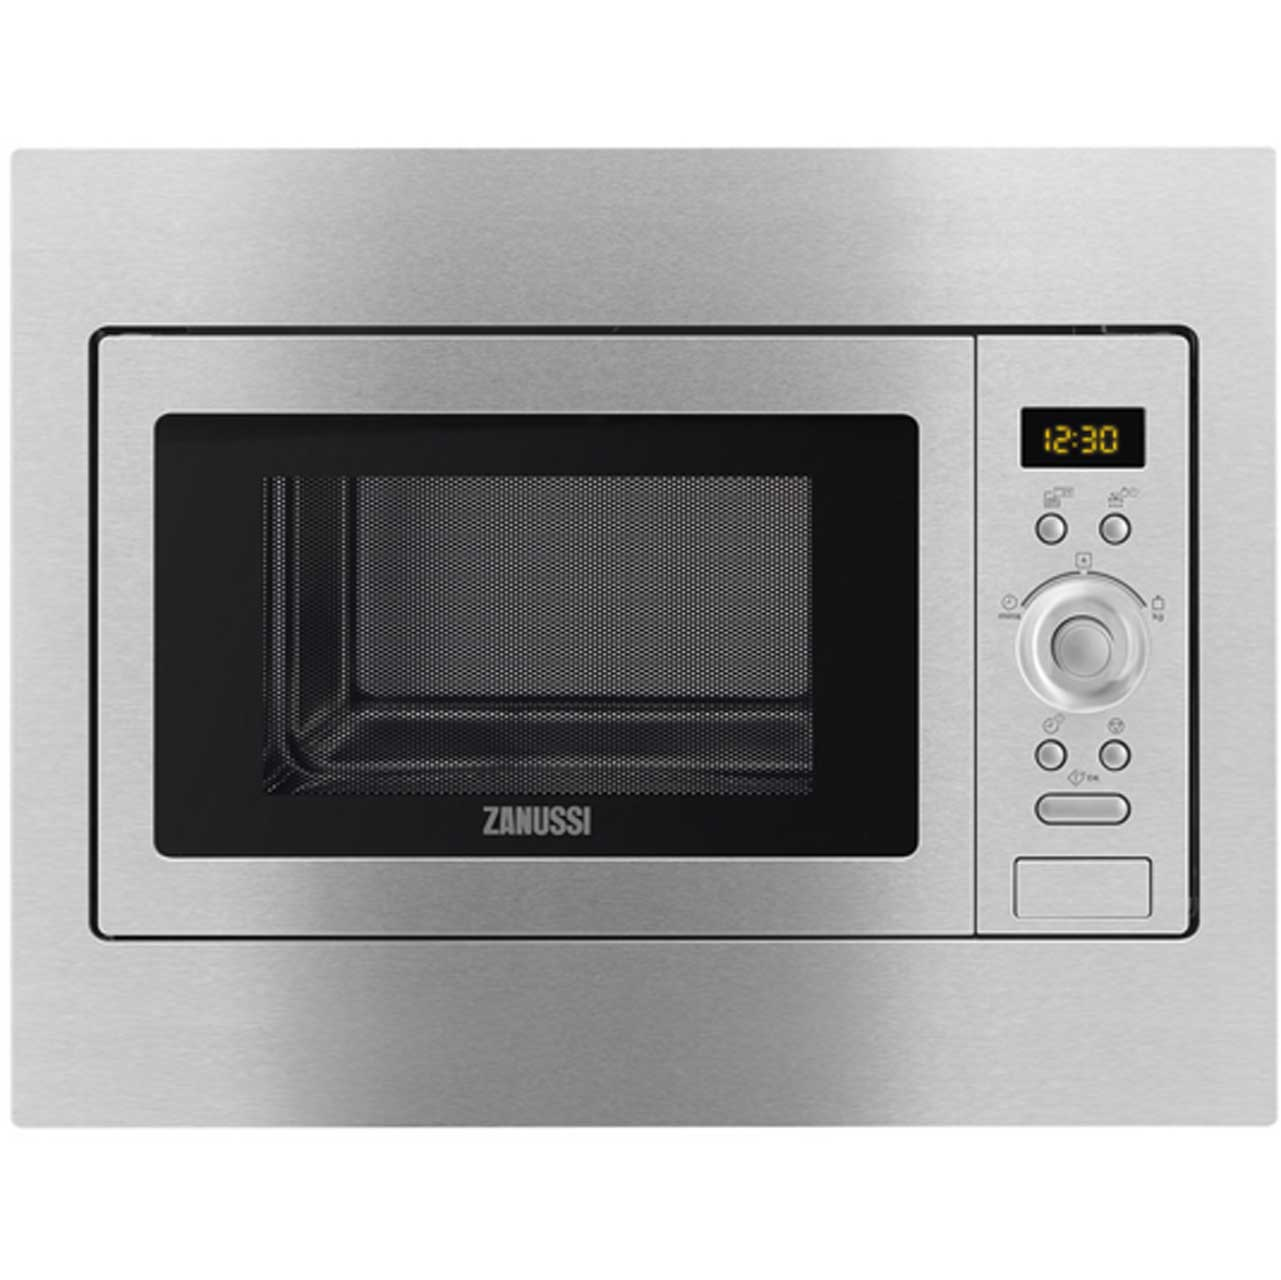 Zanussi ZSC25259XA Integrated Microwave Oven in Stainless Steel